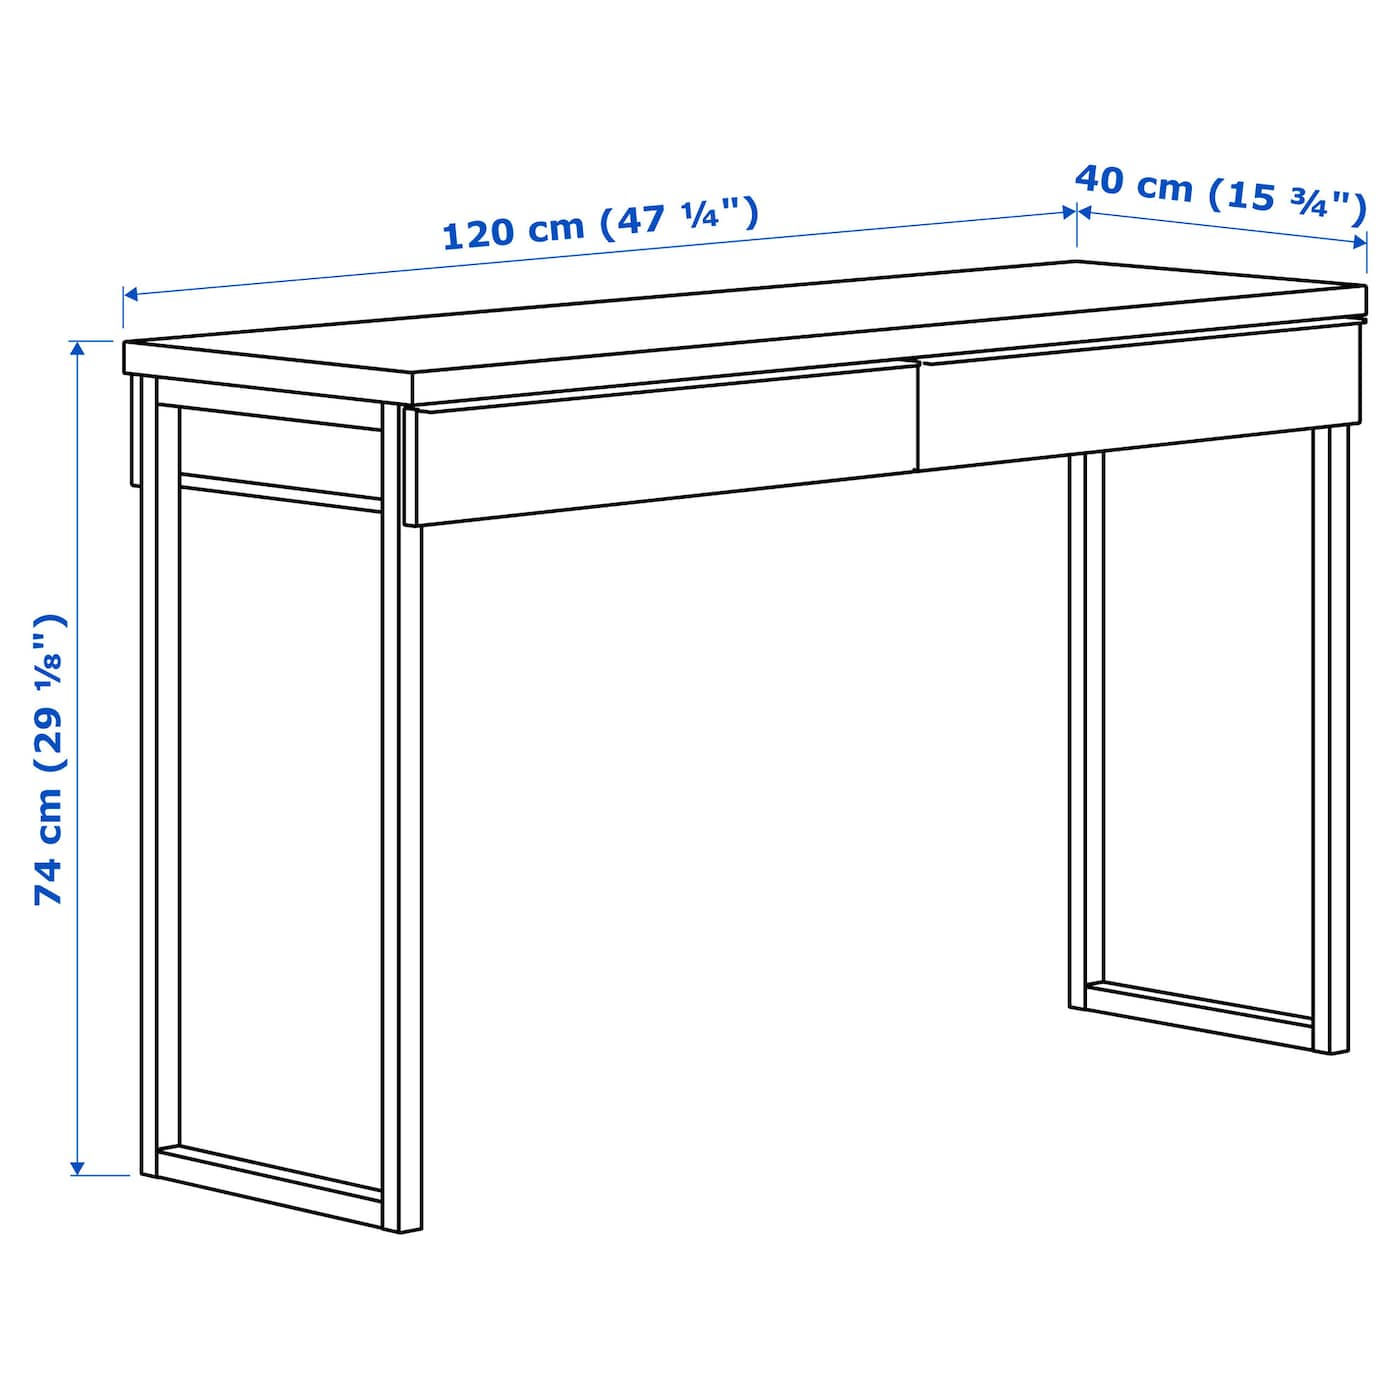 IKEA BESTA BURS Desk Can Be Placed In The Middle Of A Room Because Back